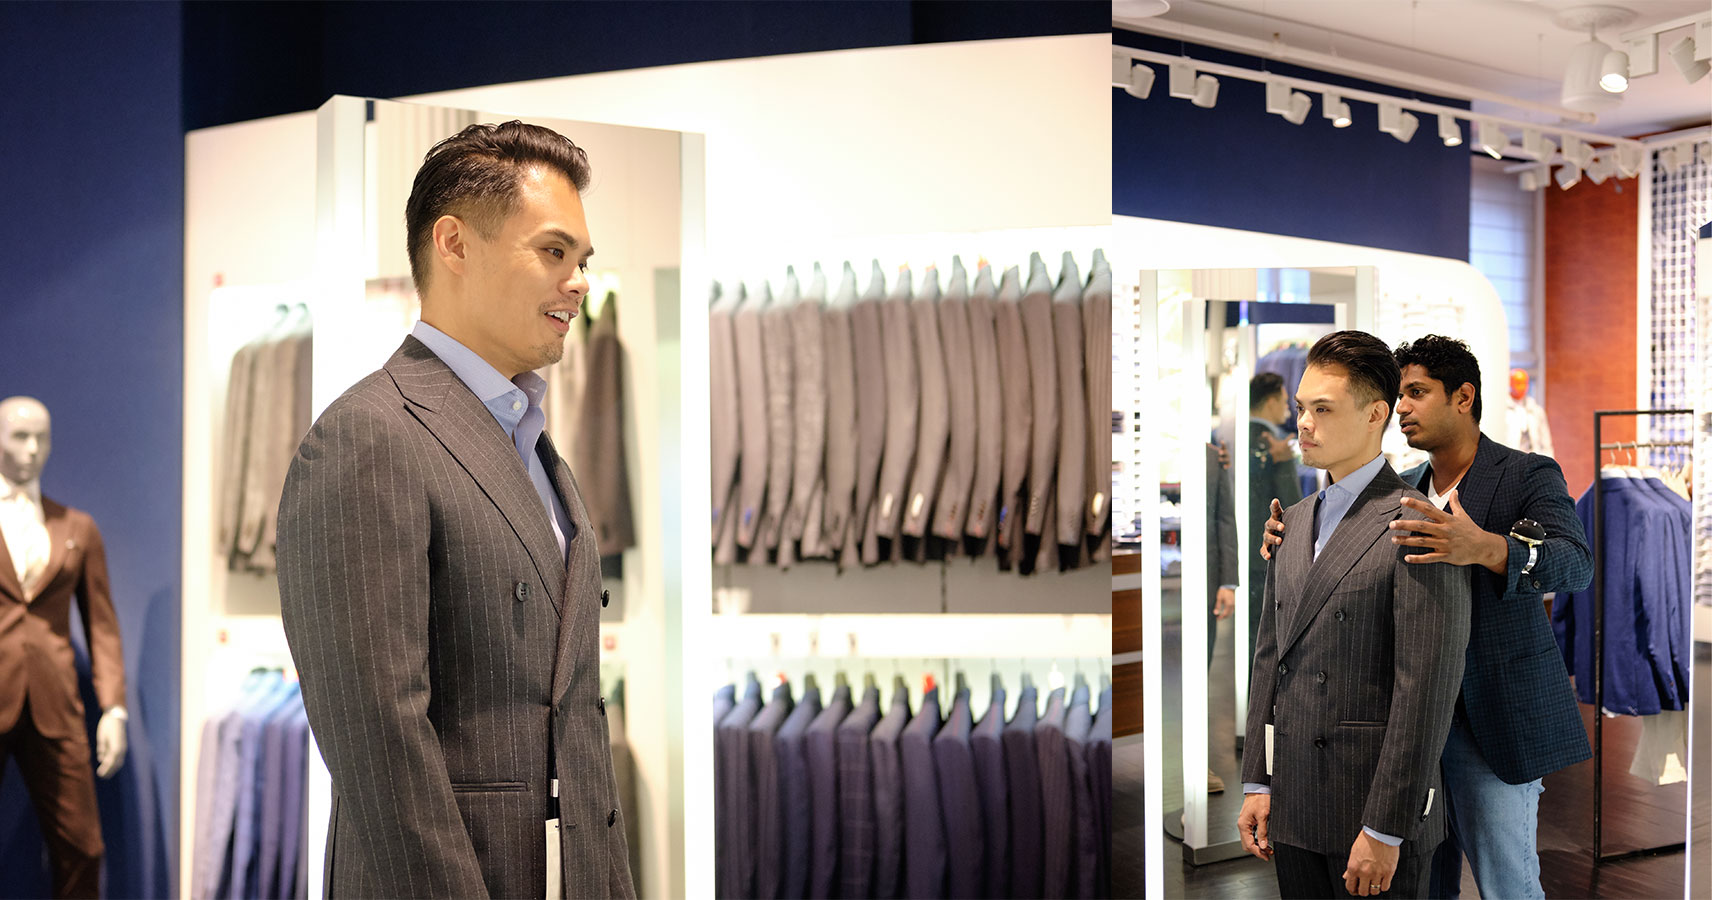 suitsupply custom made trying on a ready to wear jacket and making sure shoulders fit well - effortless gent